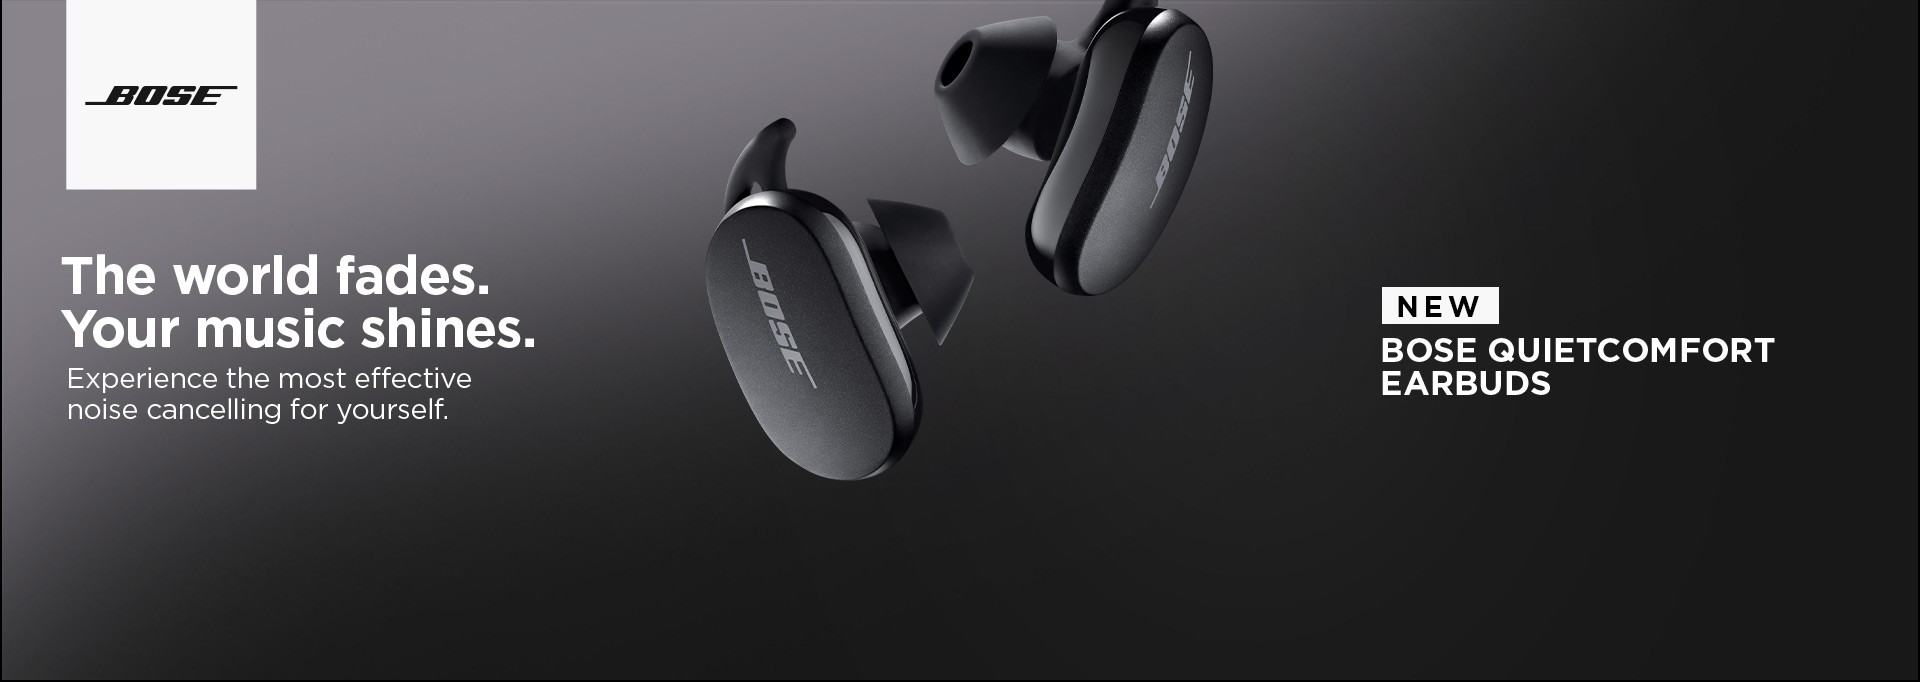 Bose-hero-slider-desktop.jpg